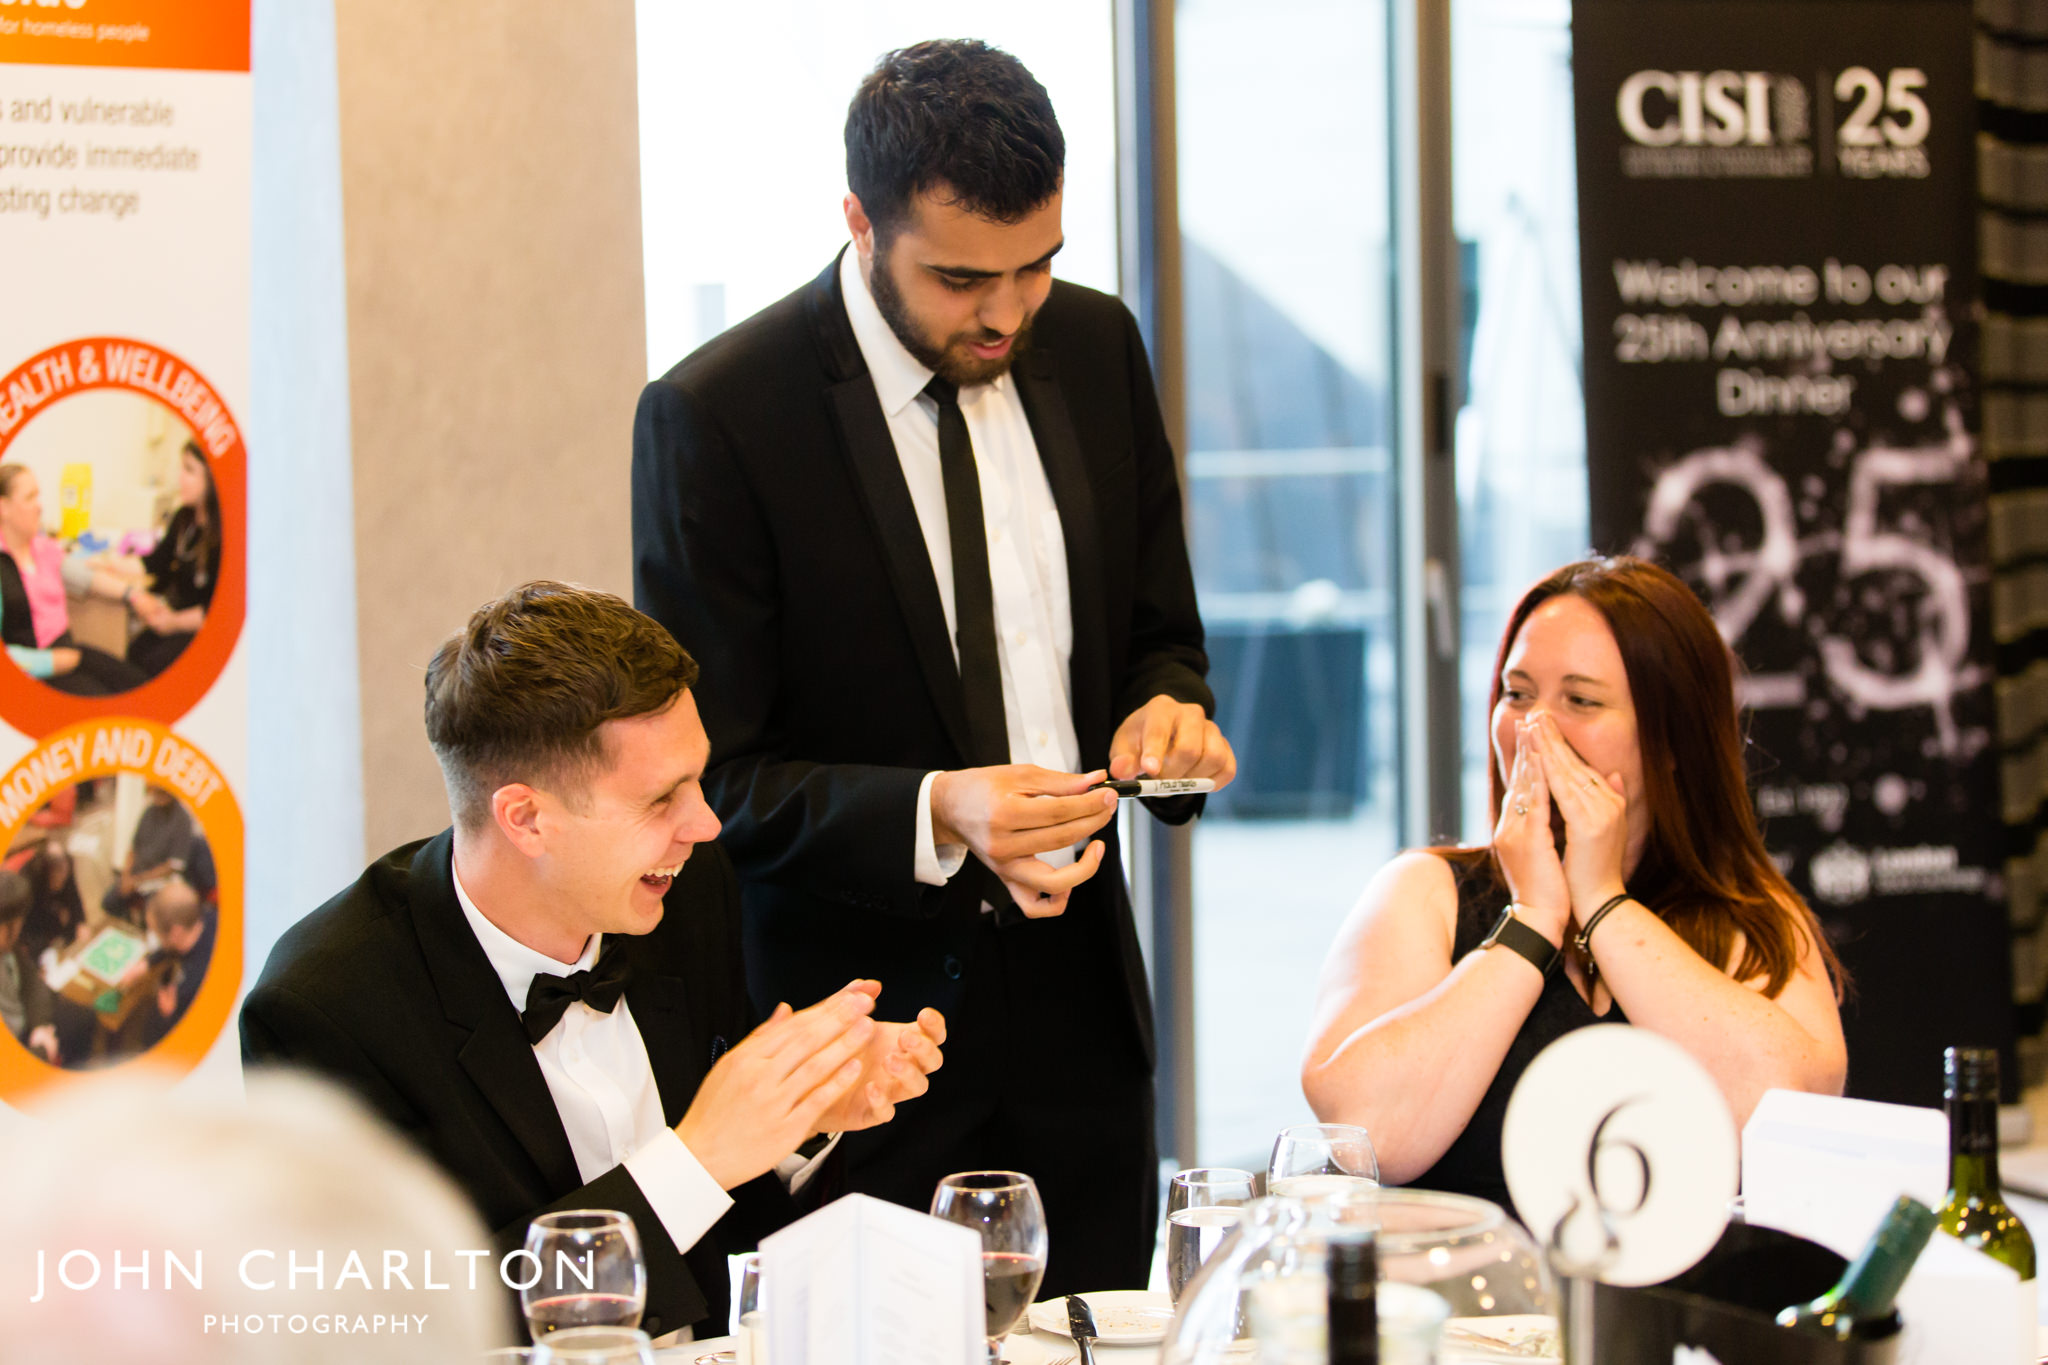 Performing at the CISI Annual Dinner